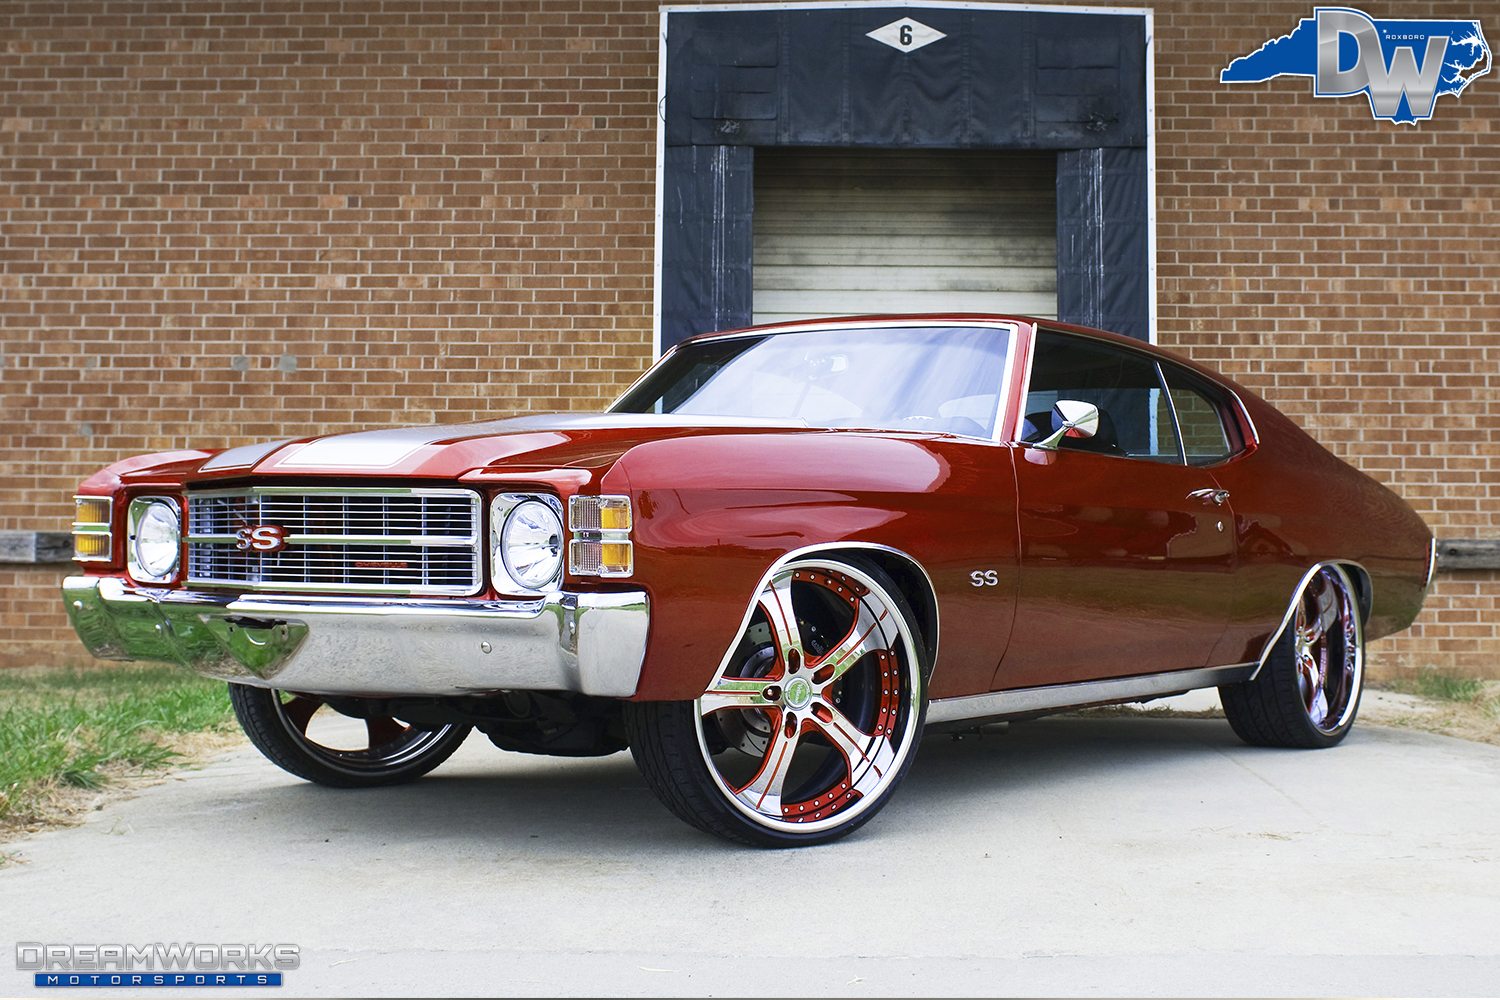 SS-Chevelle-71-Red-Candy-Dreamworks-Motorsports-1.jpg